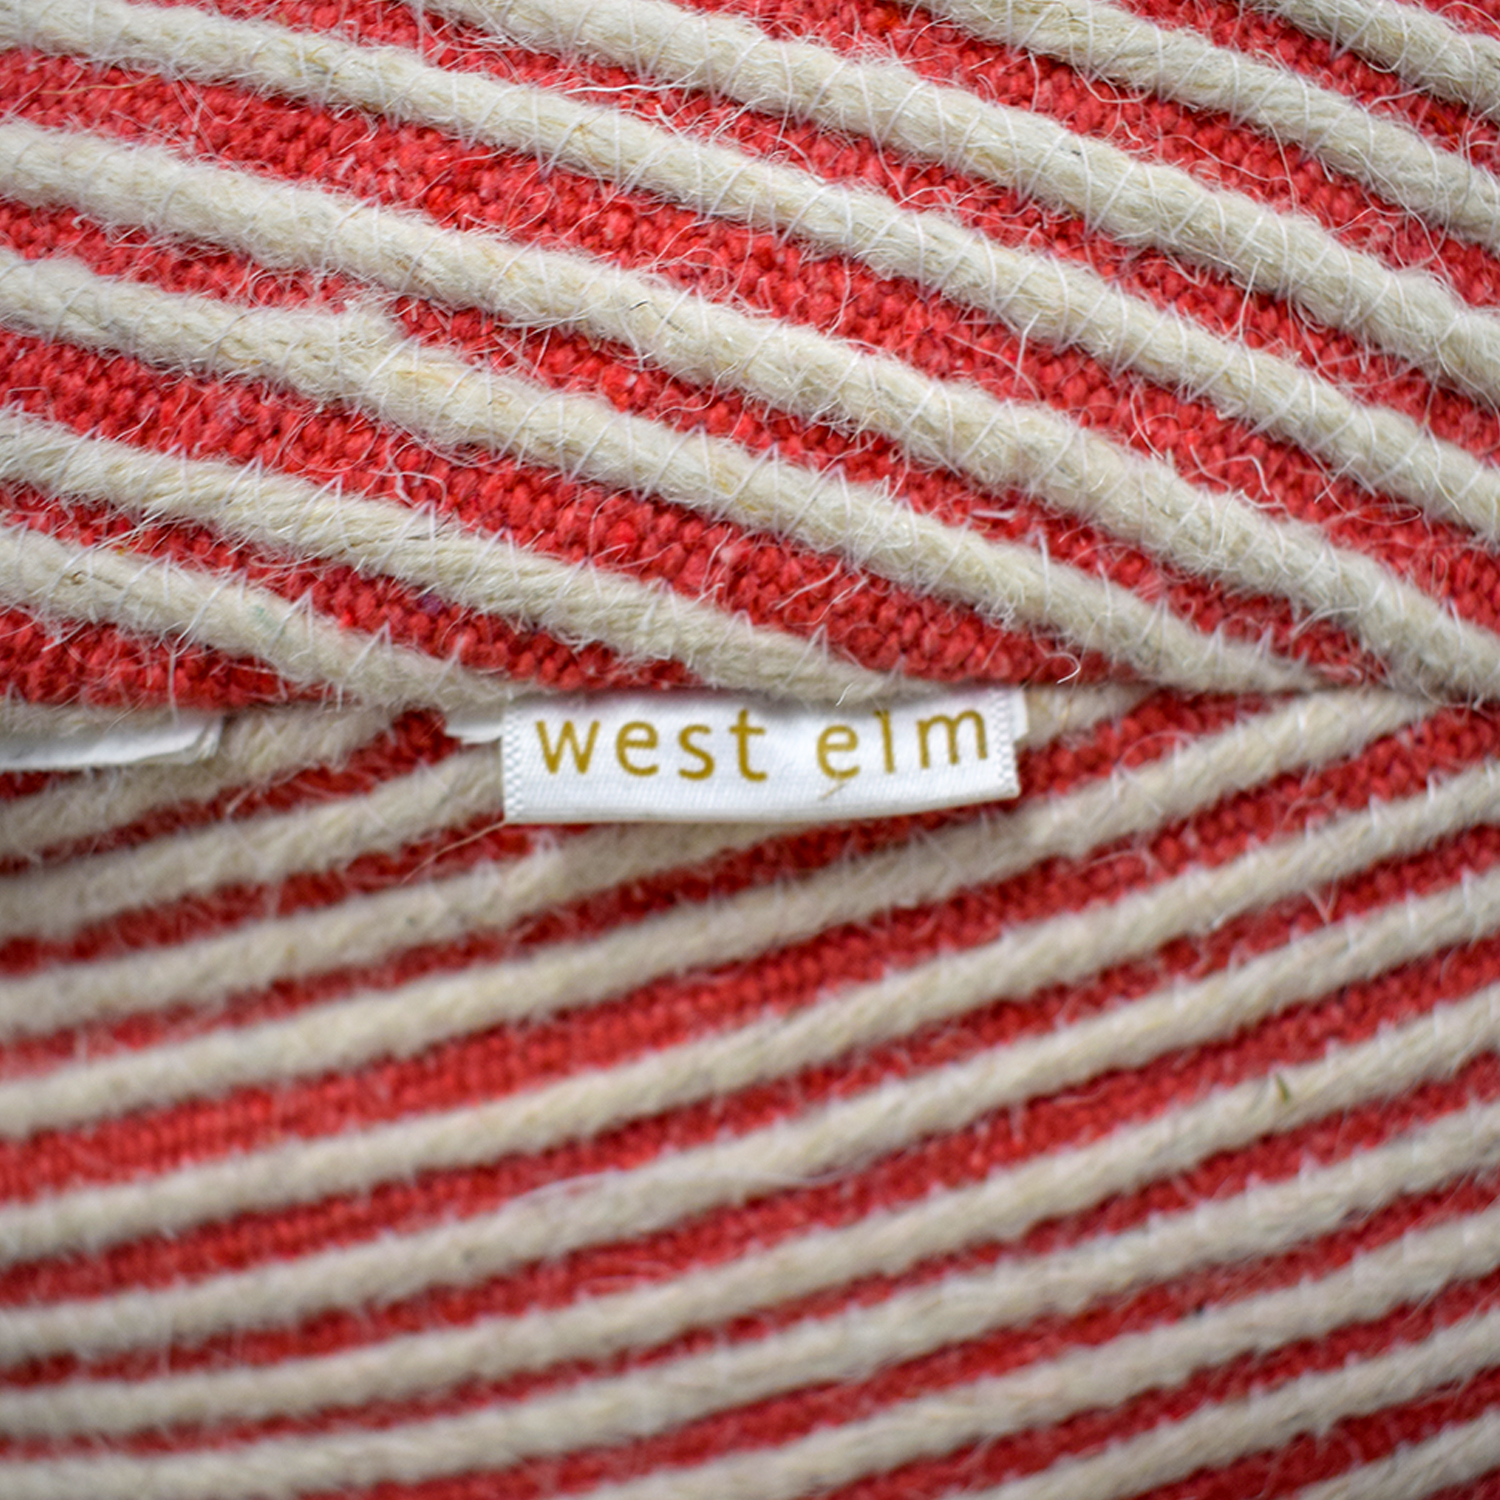 West Elm West Elm Pink and White Striped Poof Ottomans